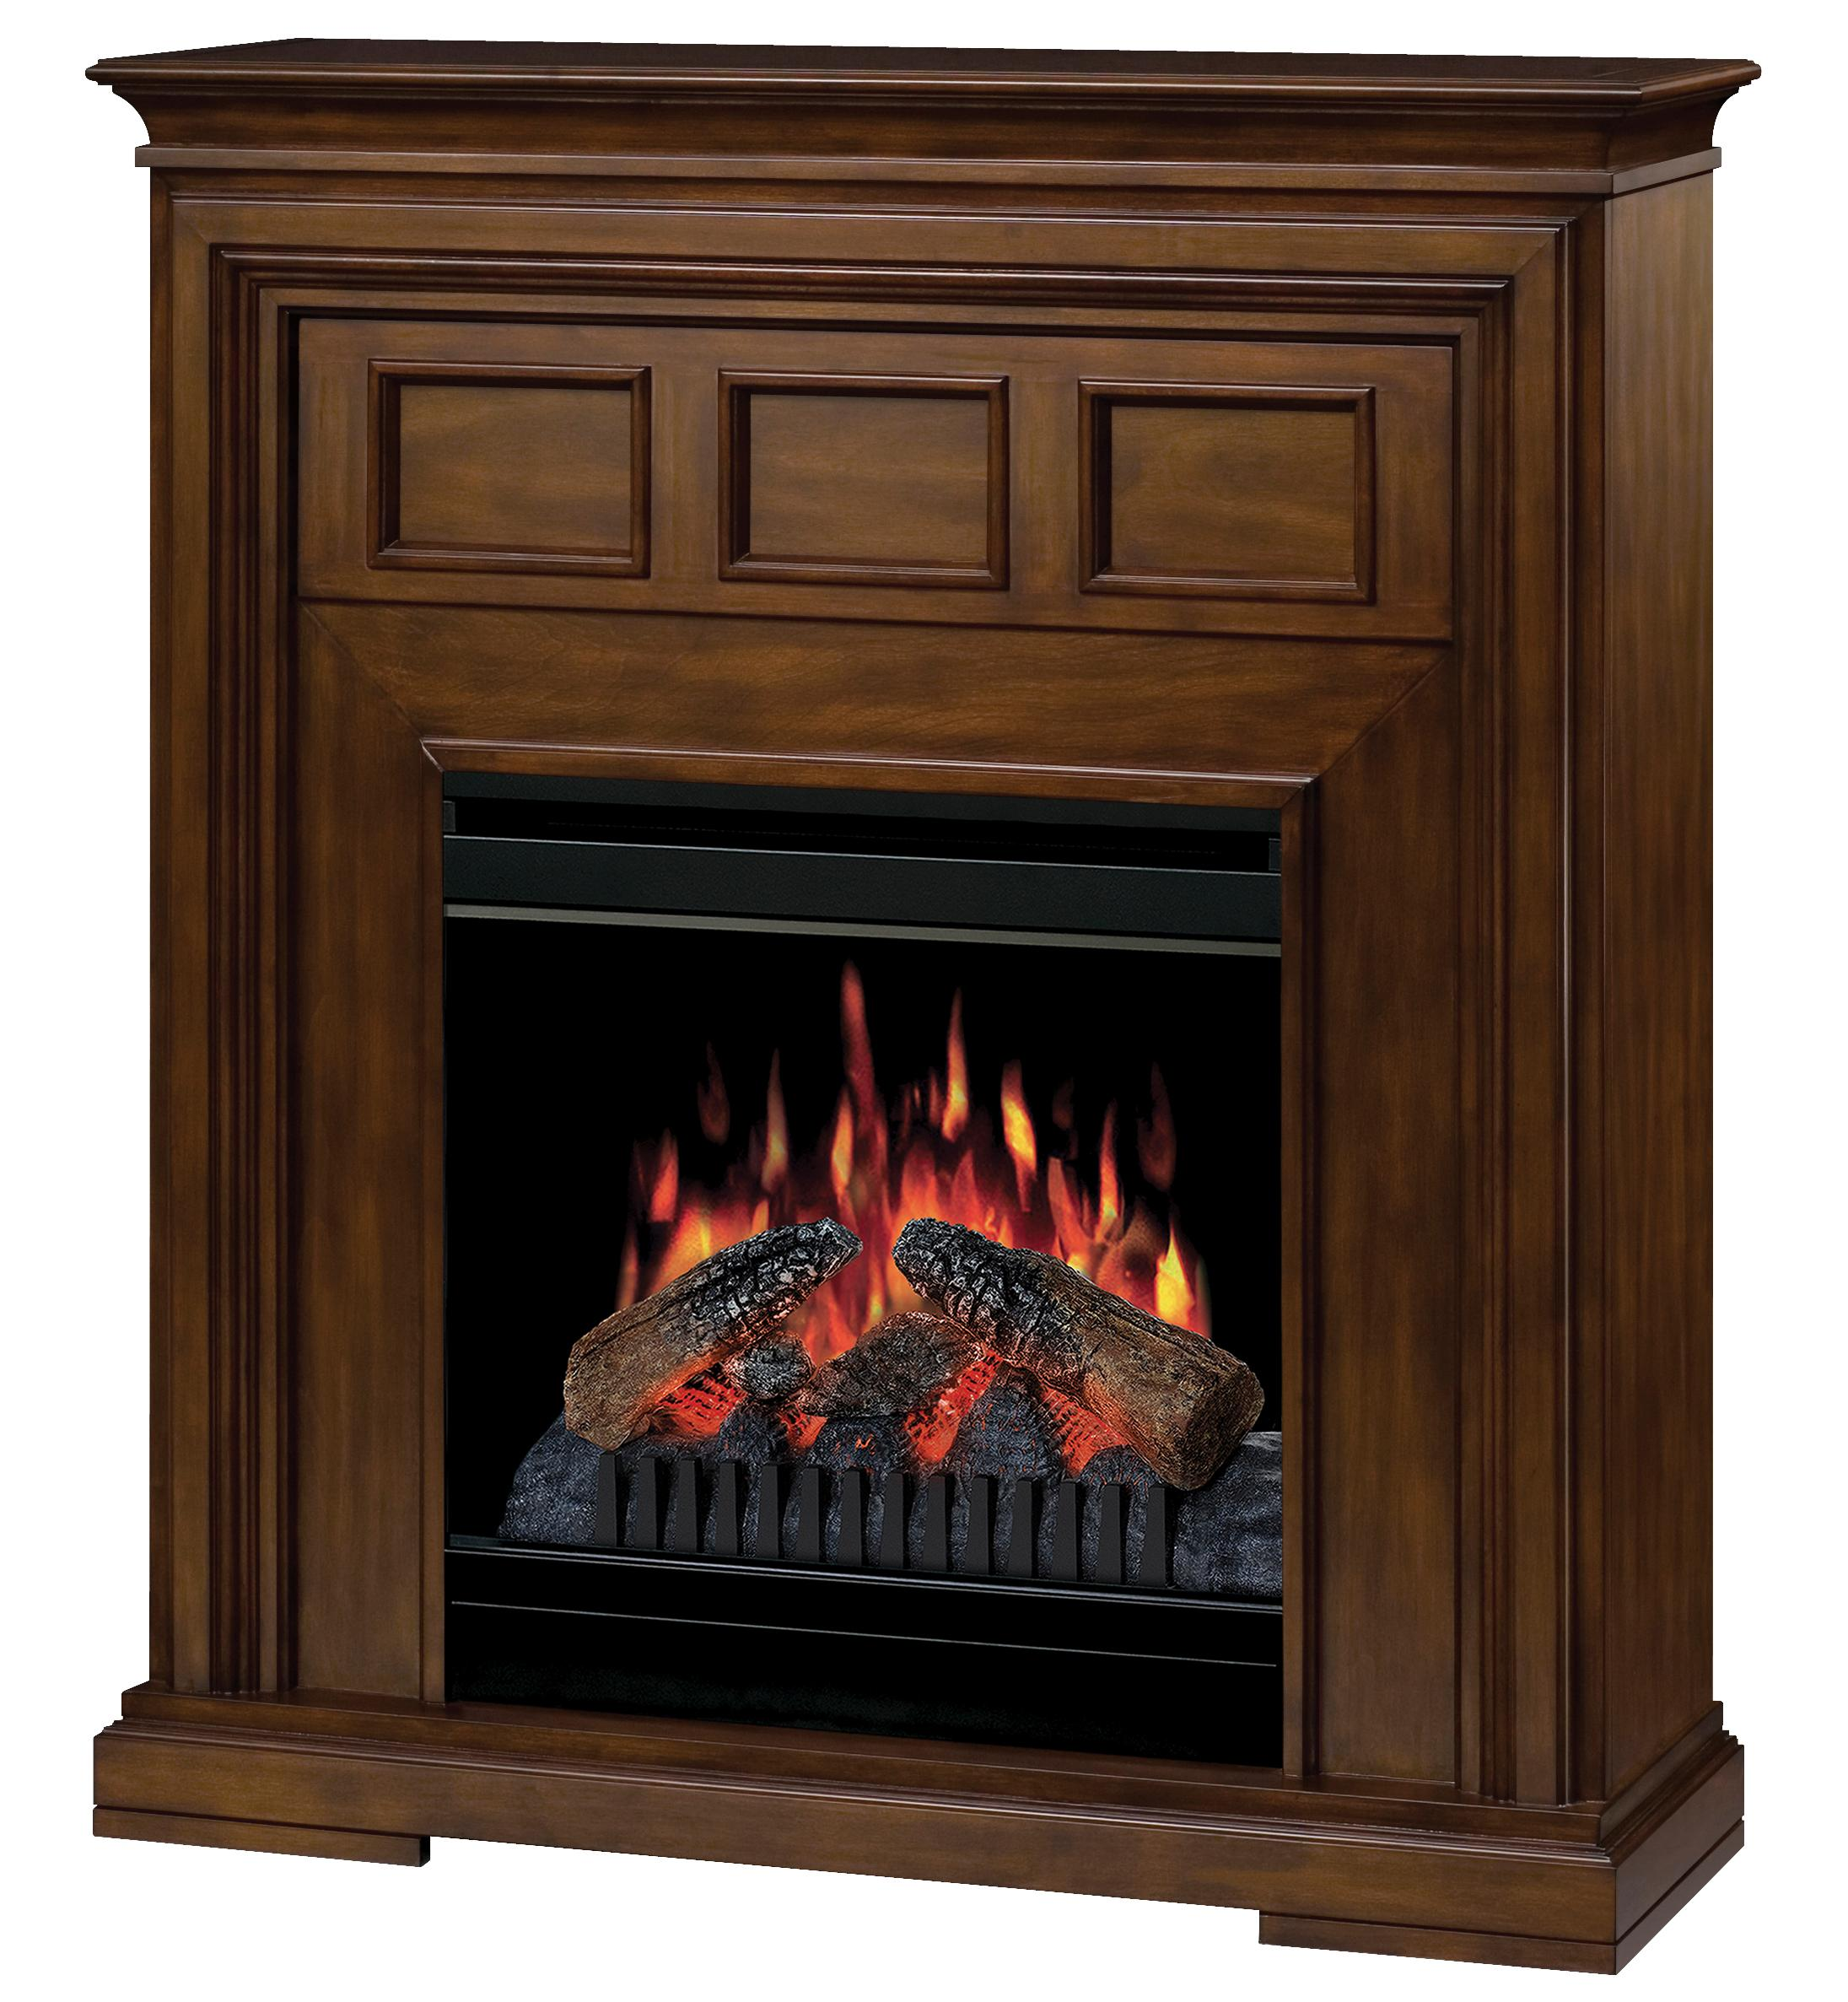 Dimplex Flat Wall Fireplaces Dfp20 1060bw Acadian Electric